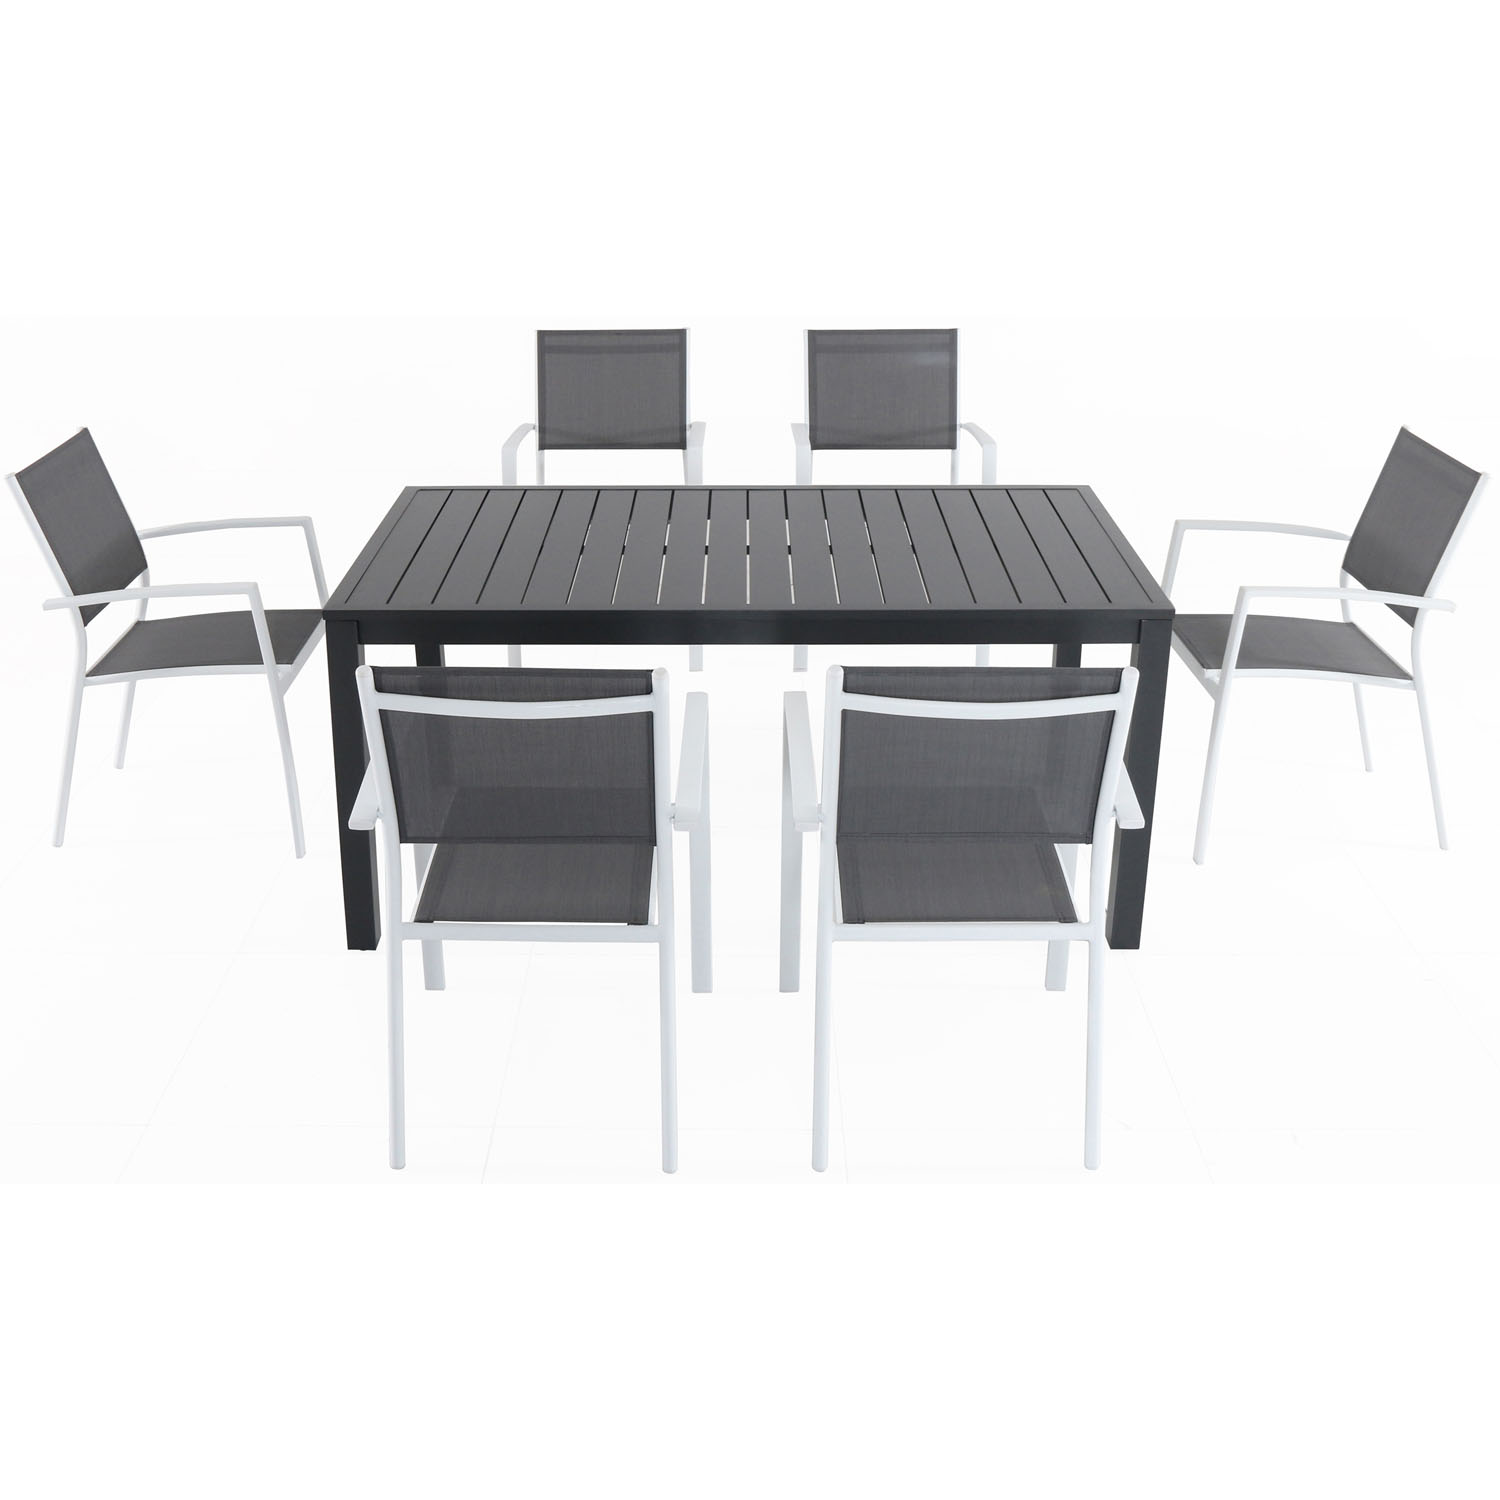 "Hanover Naples 7-Piece Outdoor Dining Set w/ 6 Sling Chairs in Gray/White and 40"" x 78"" Dining Table"